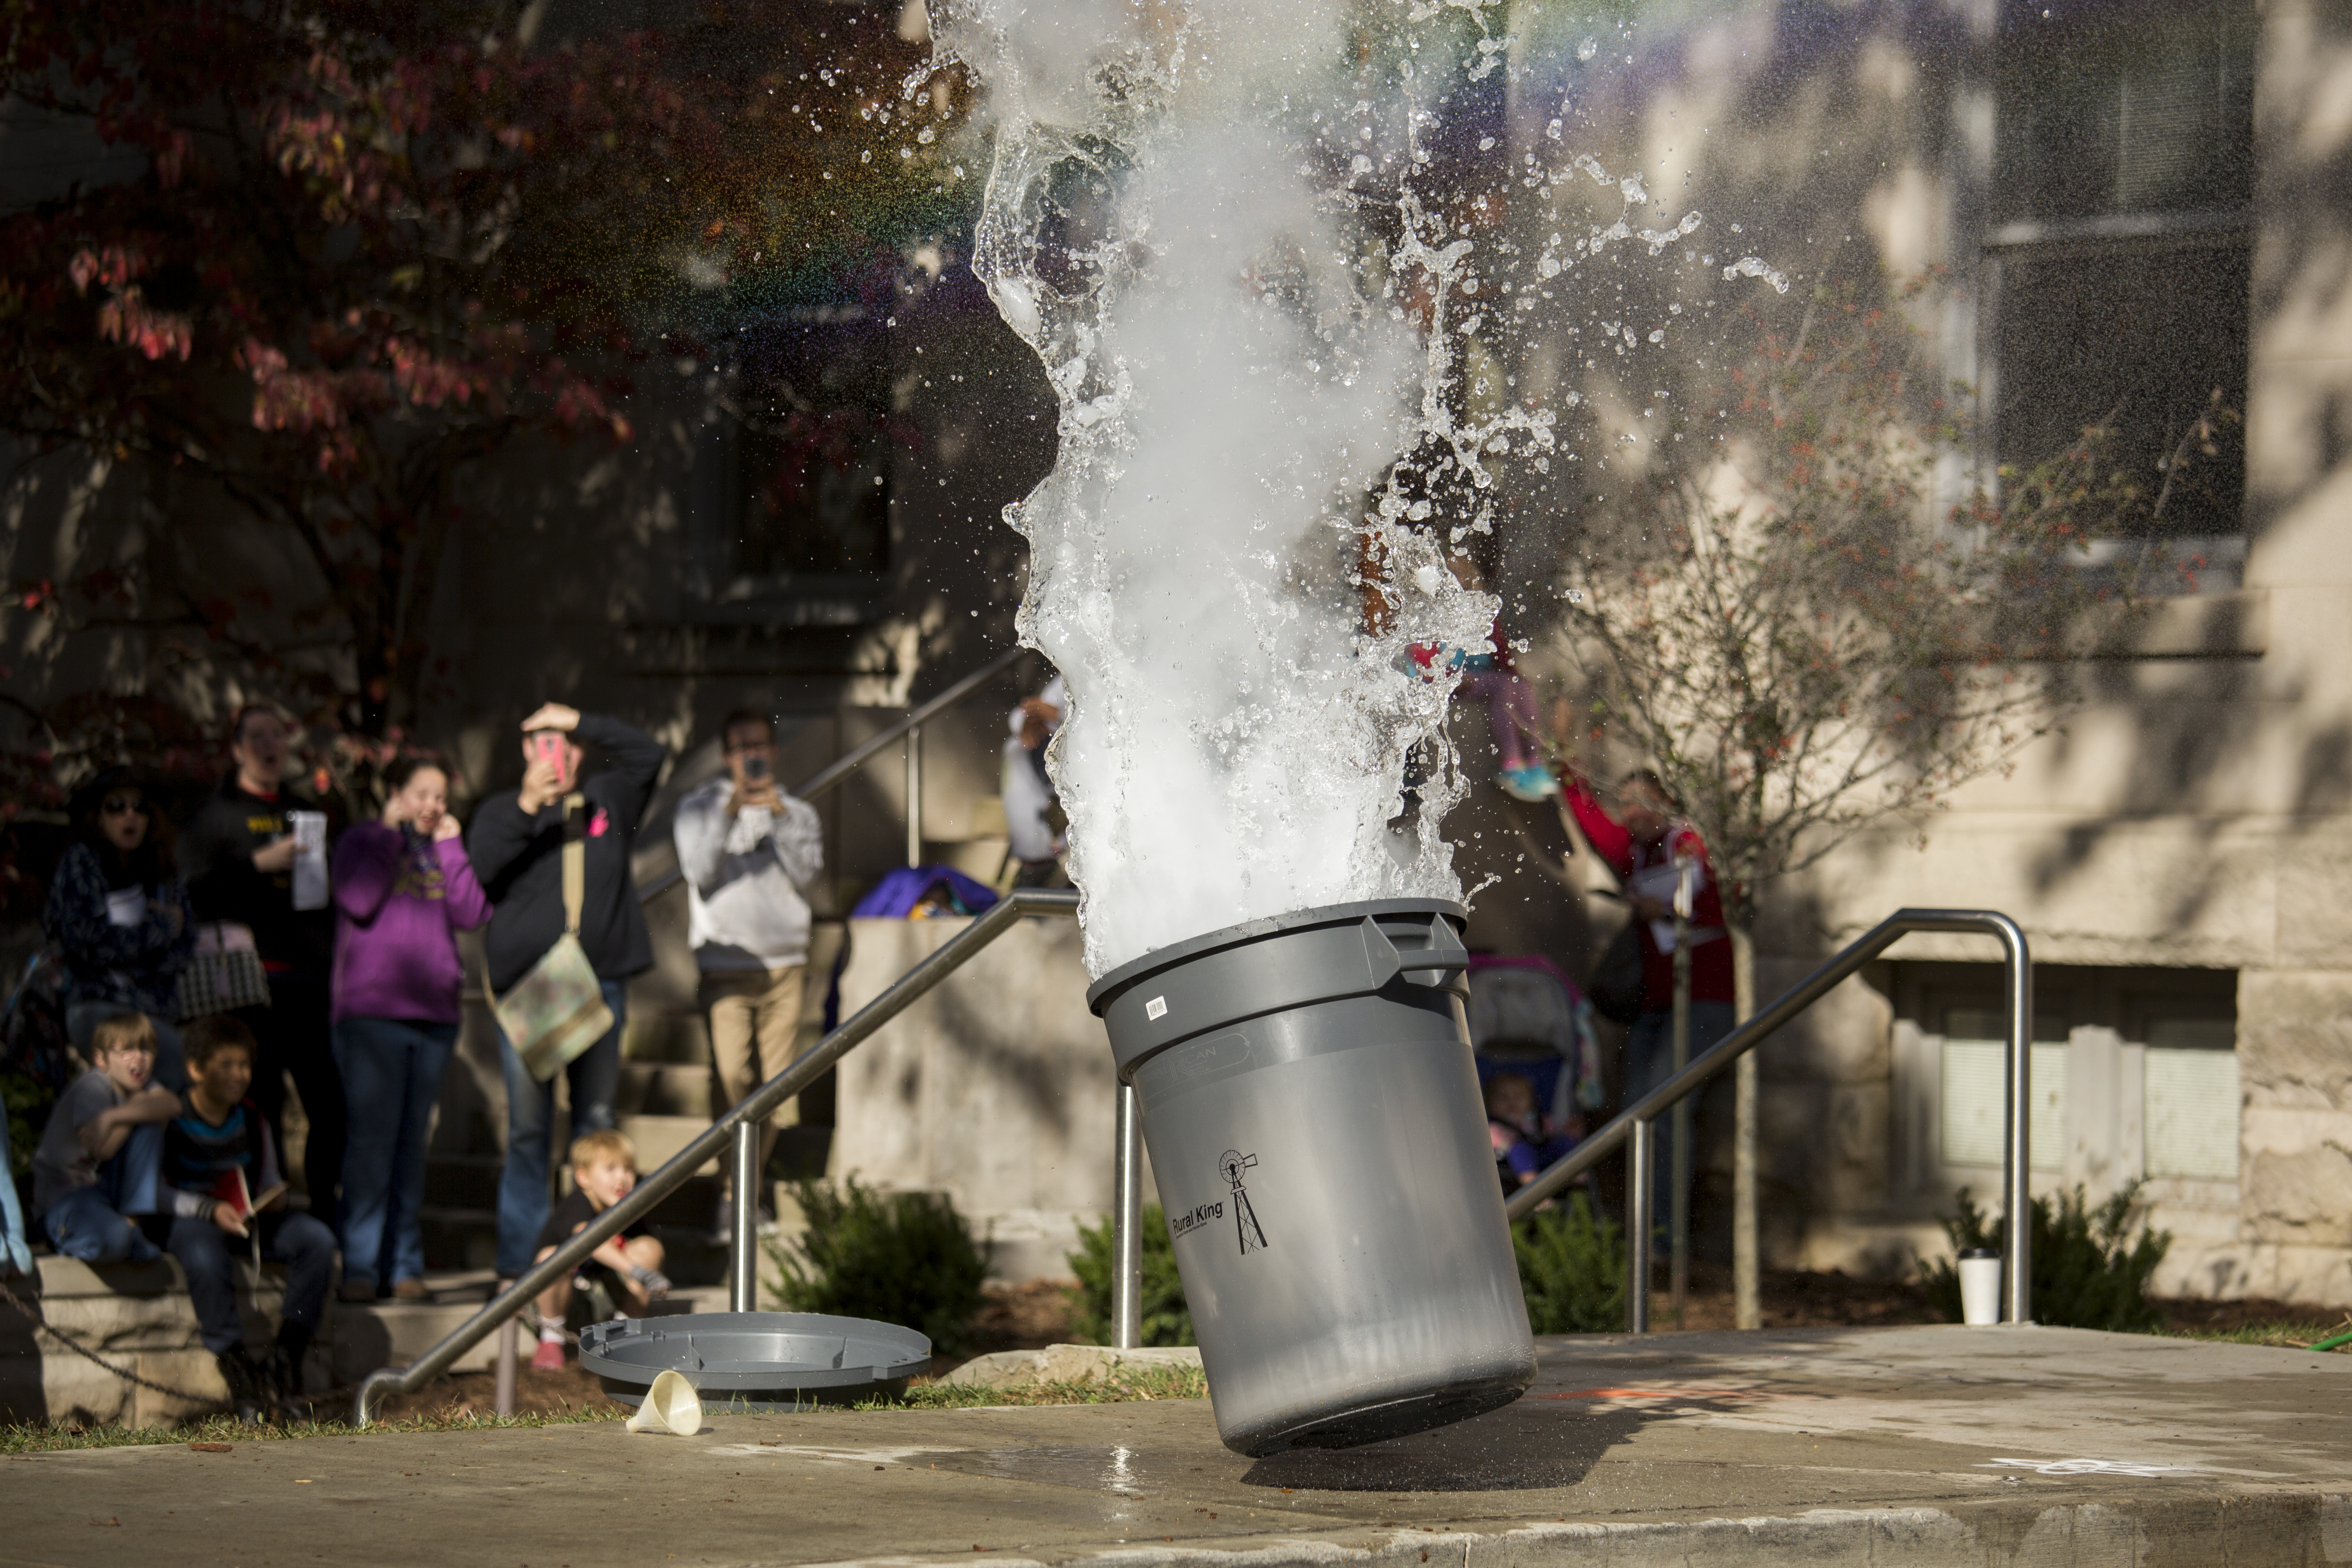 Garbage can experiment exploding